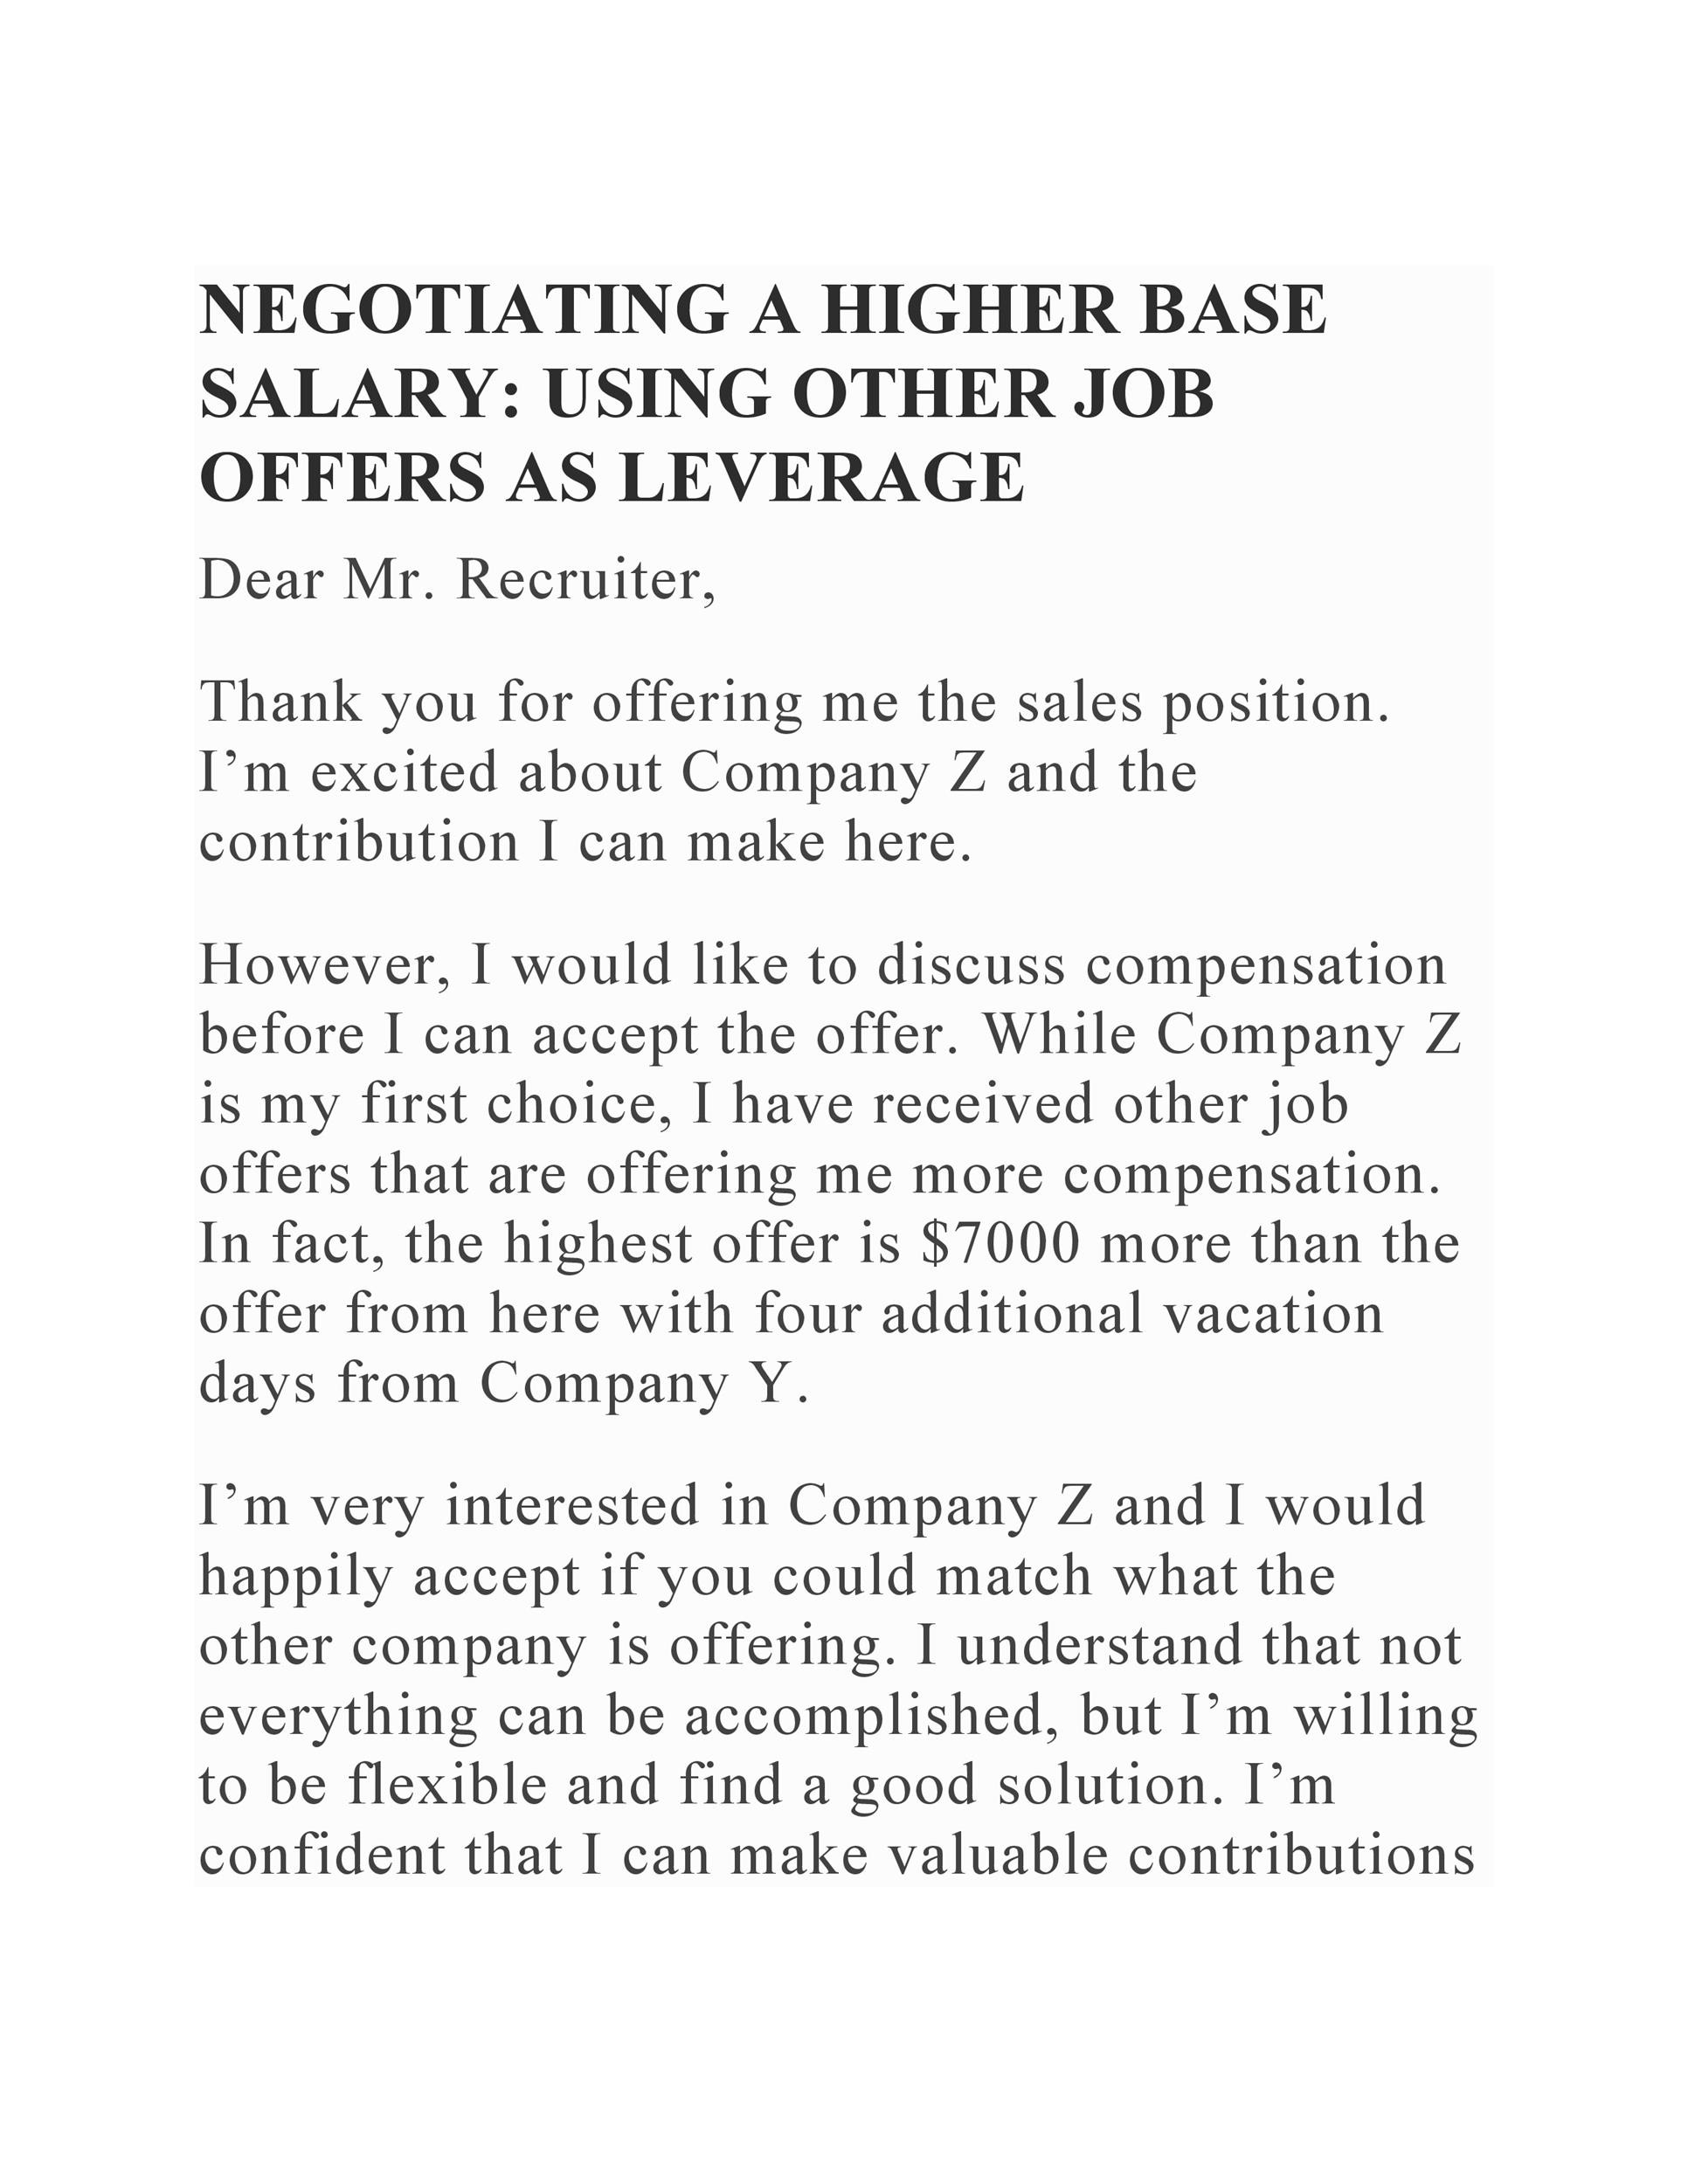 Free salary negotiation letter 12